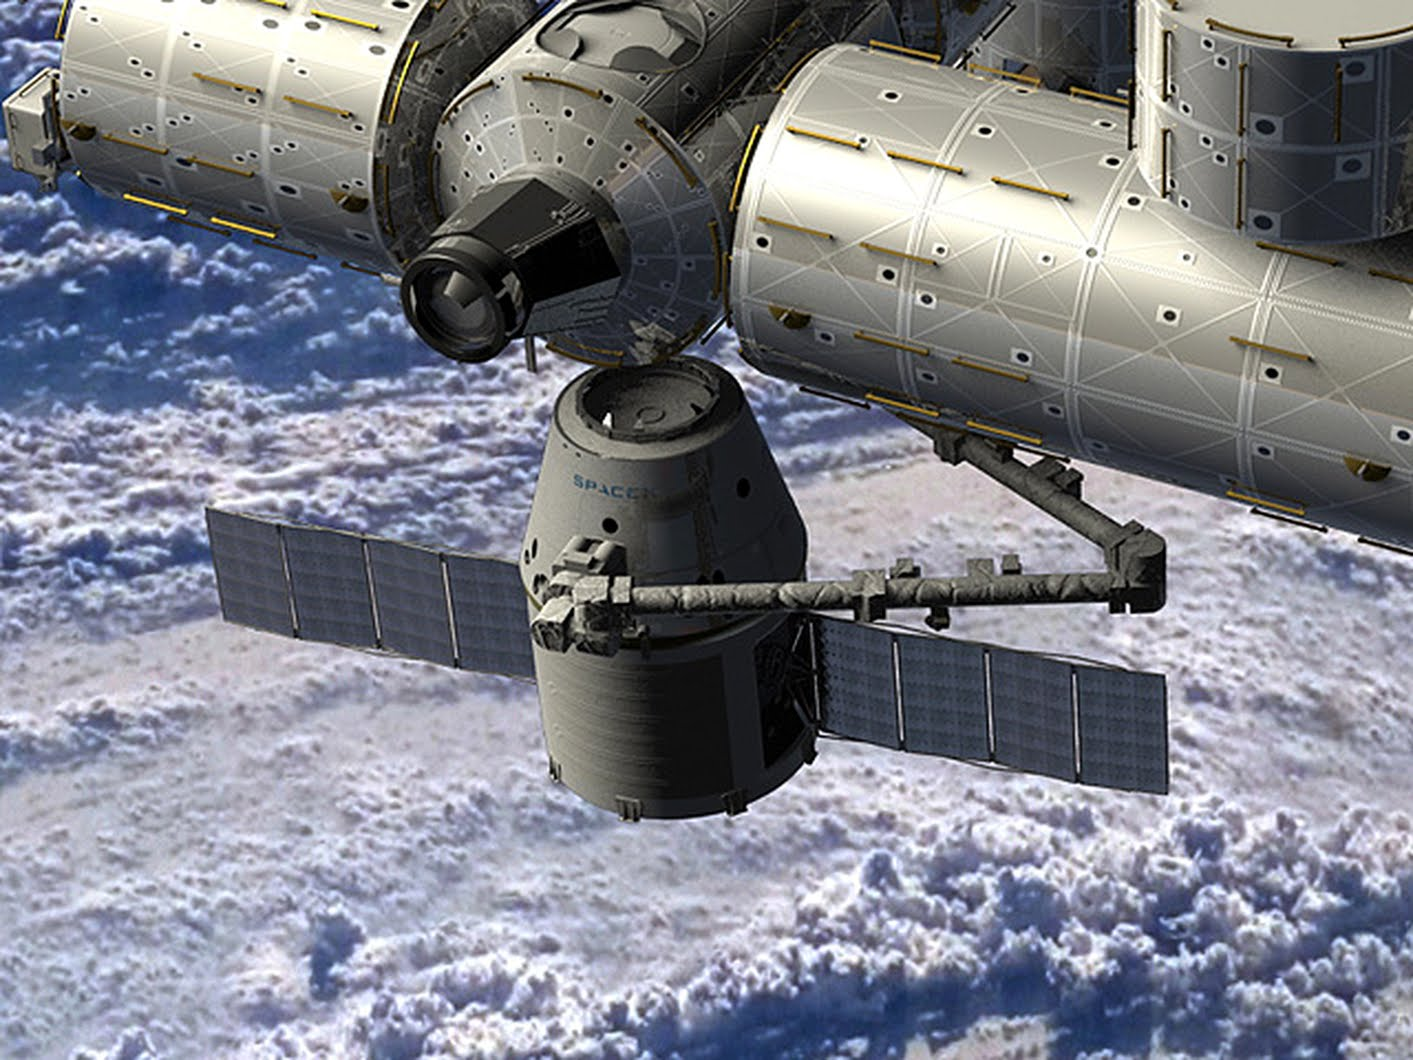 http://3.bp.blogspot.com/-p8Y3oZ2l6As/T7lzvdESM-I/AAAAAAAAXZ8/RL5EEcSYqPk/s1600/SpaceX_Dragon_spacecraft.jpg